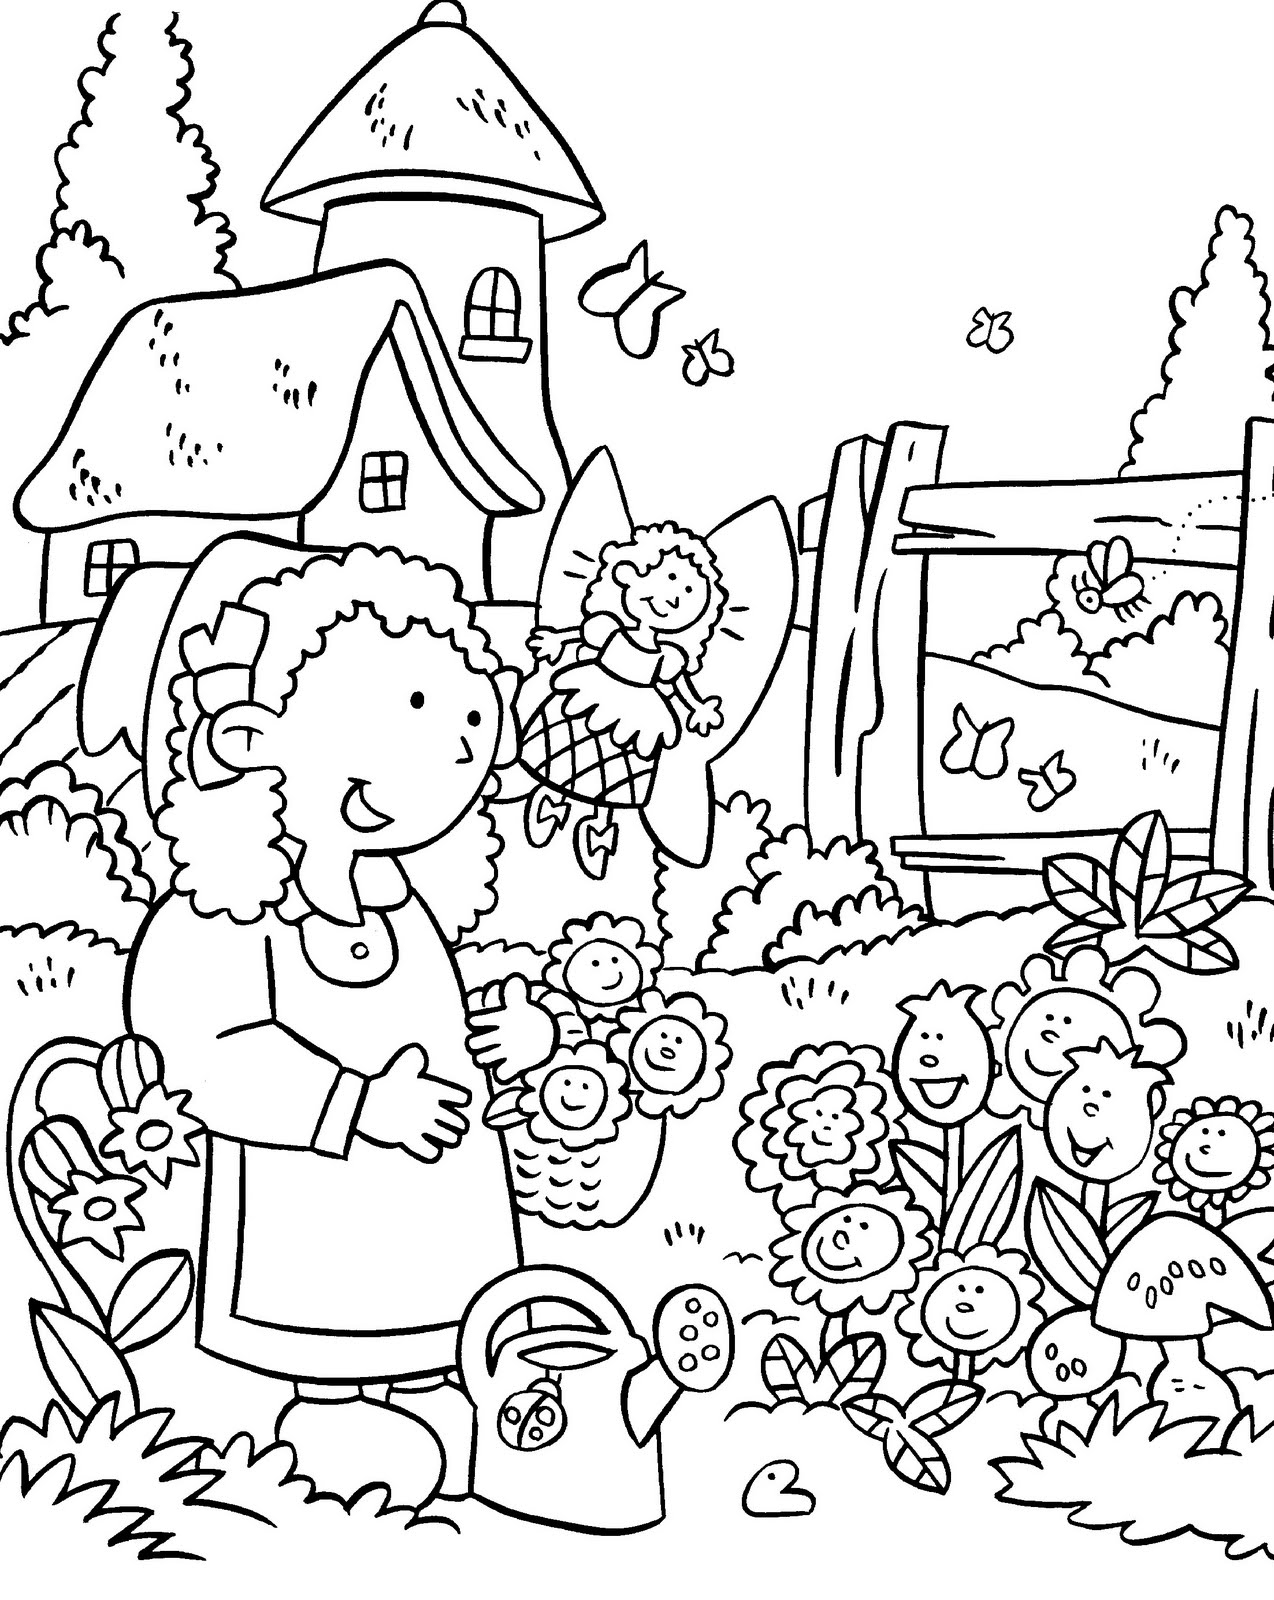 20 garden coloring pages selection | free coloring pages - part 2